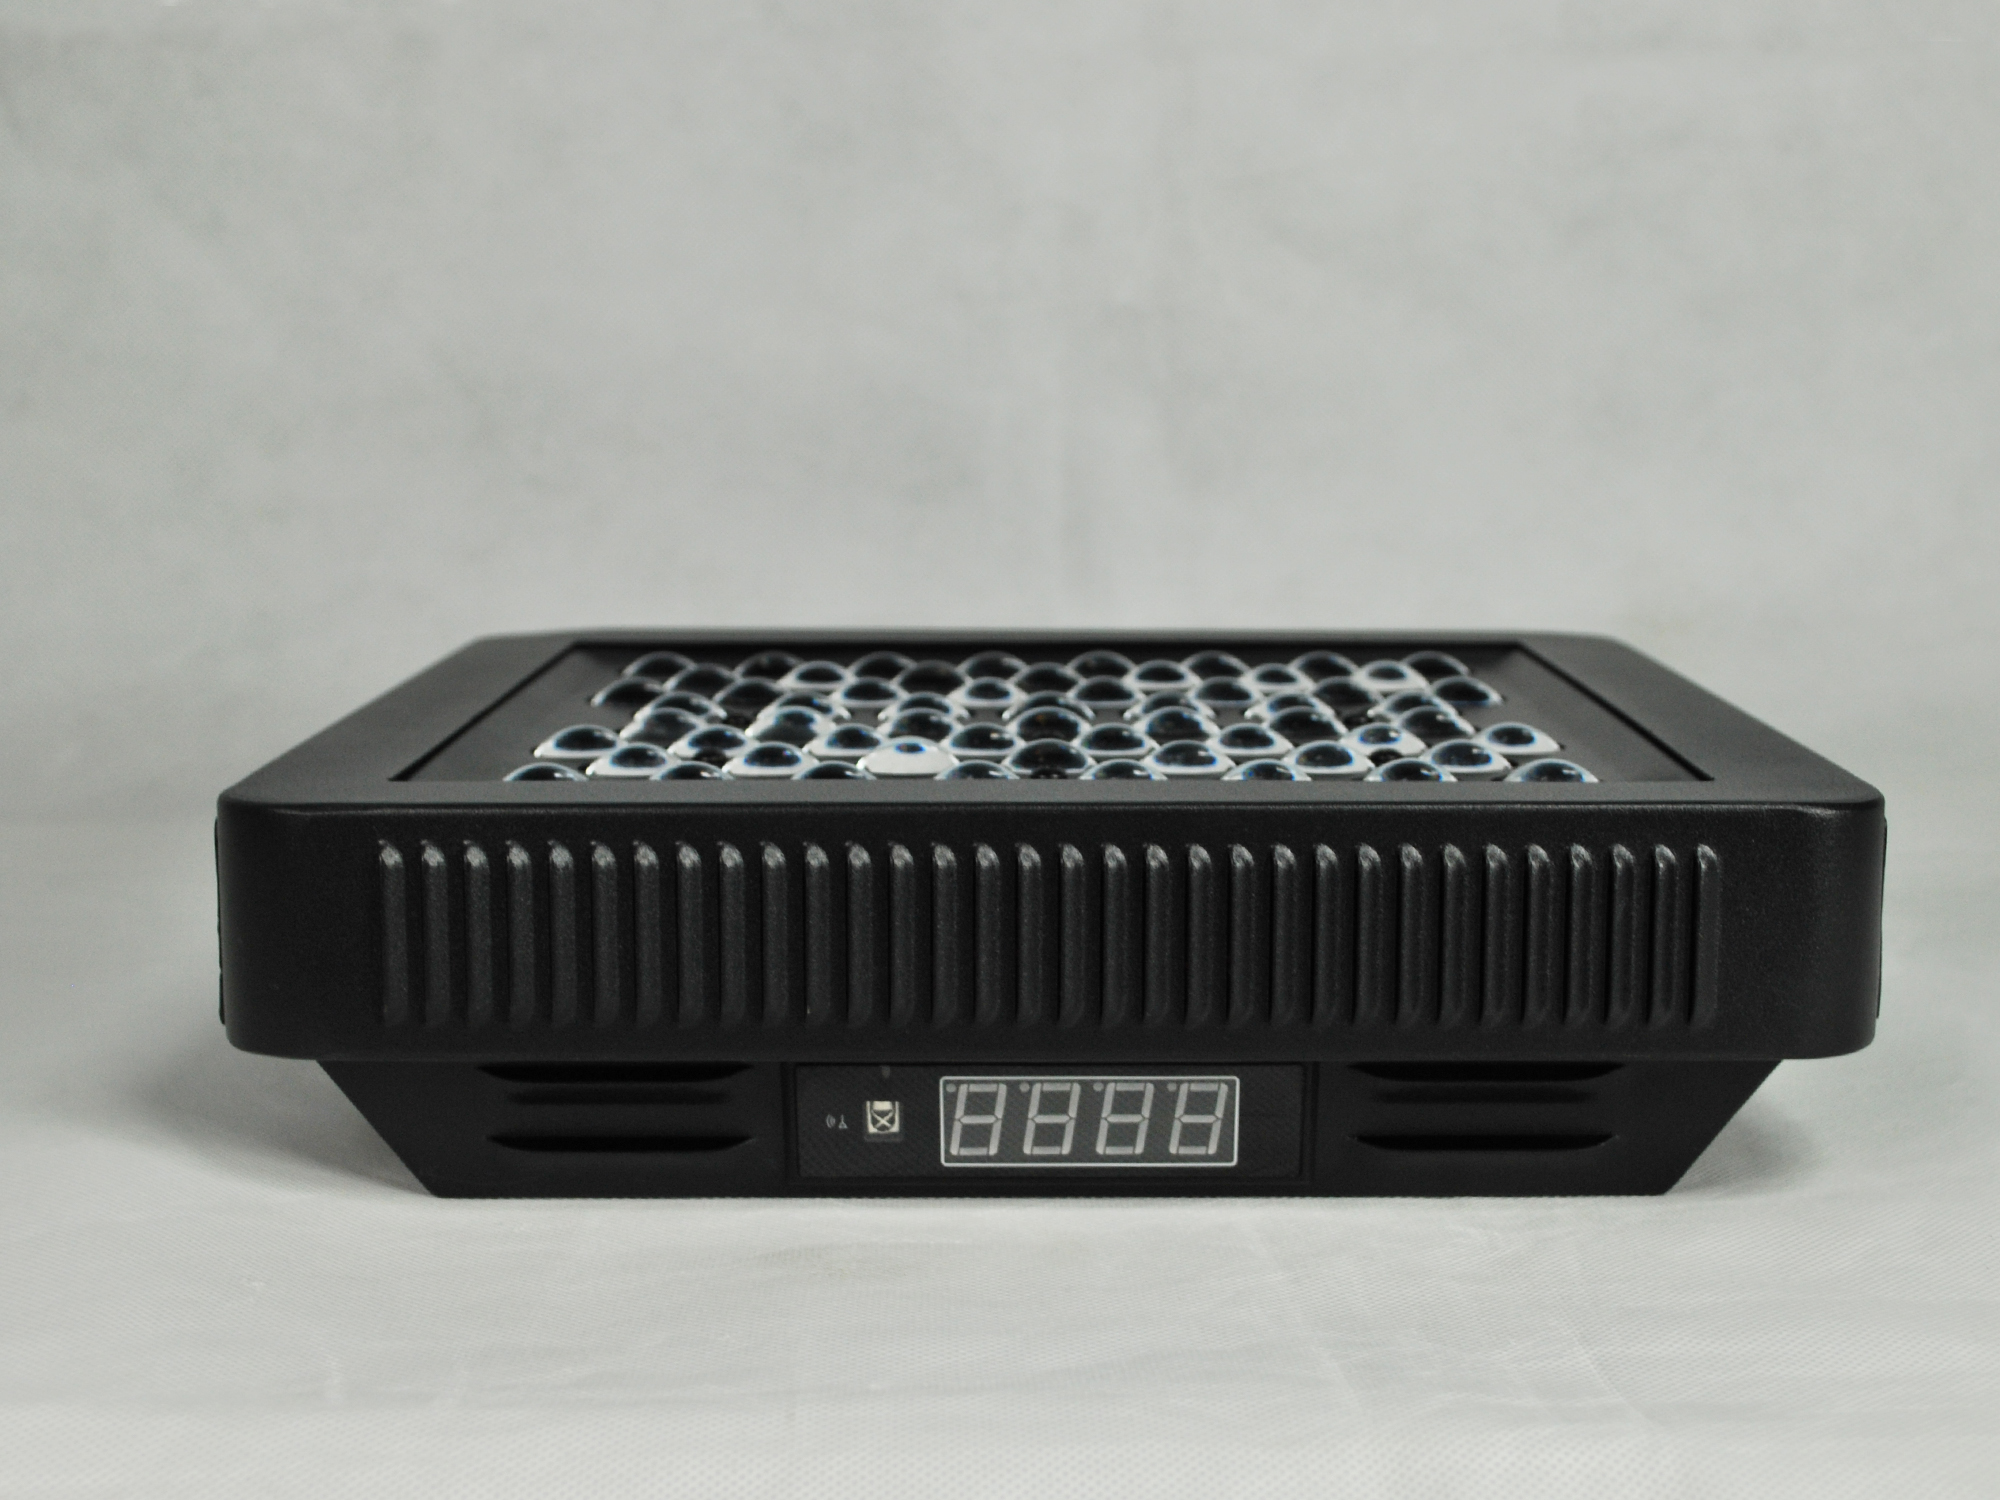 120 ZA series grow light for green house